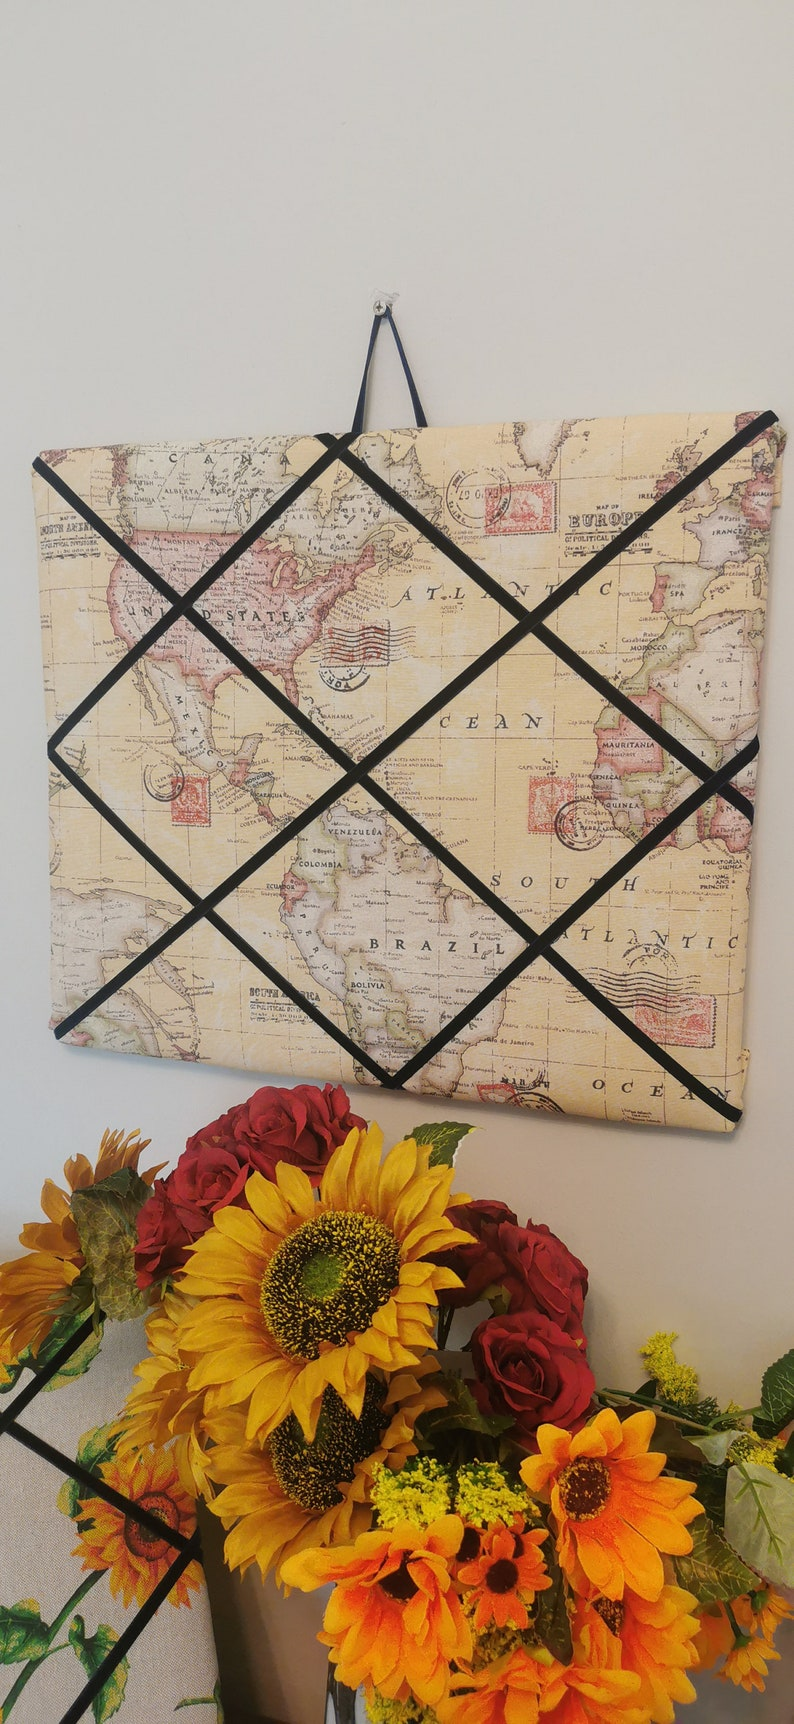 World map memory boards /_ sunflower /_ deers stags /_ farmhouse rustic /_ Christmas gifts/_ Christmas cards/_ photos